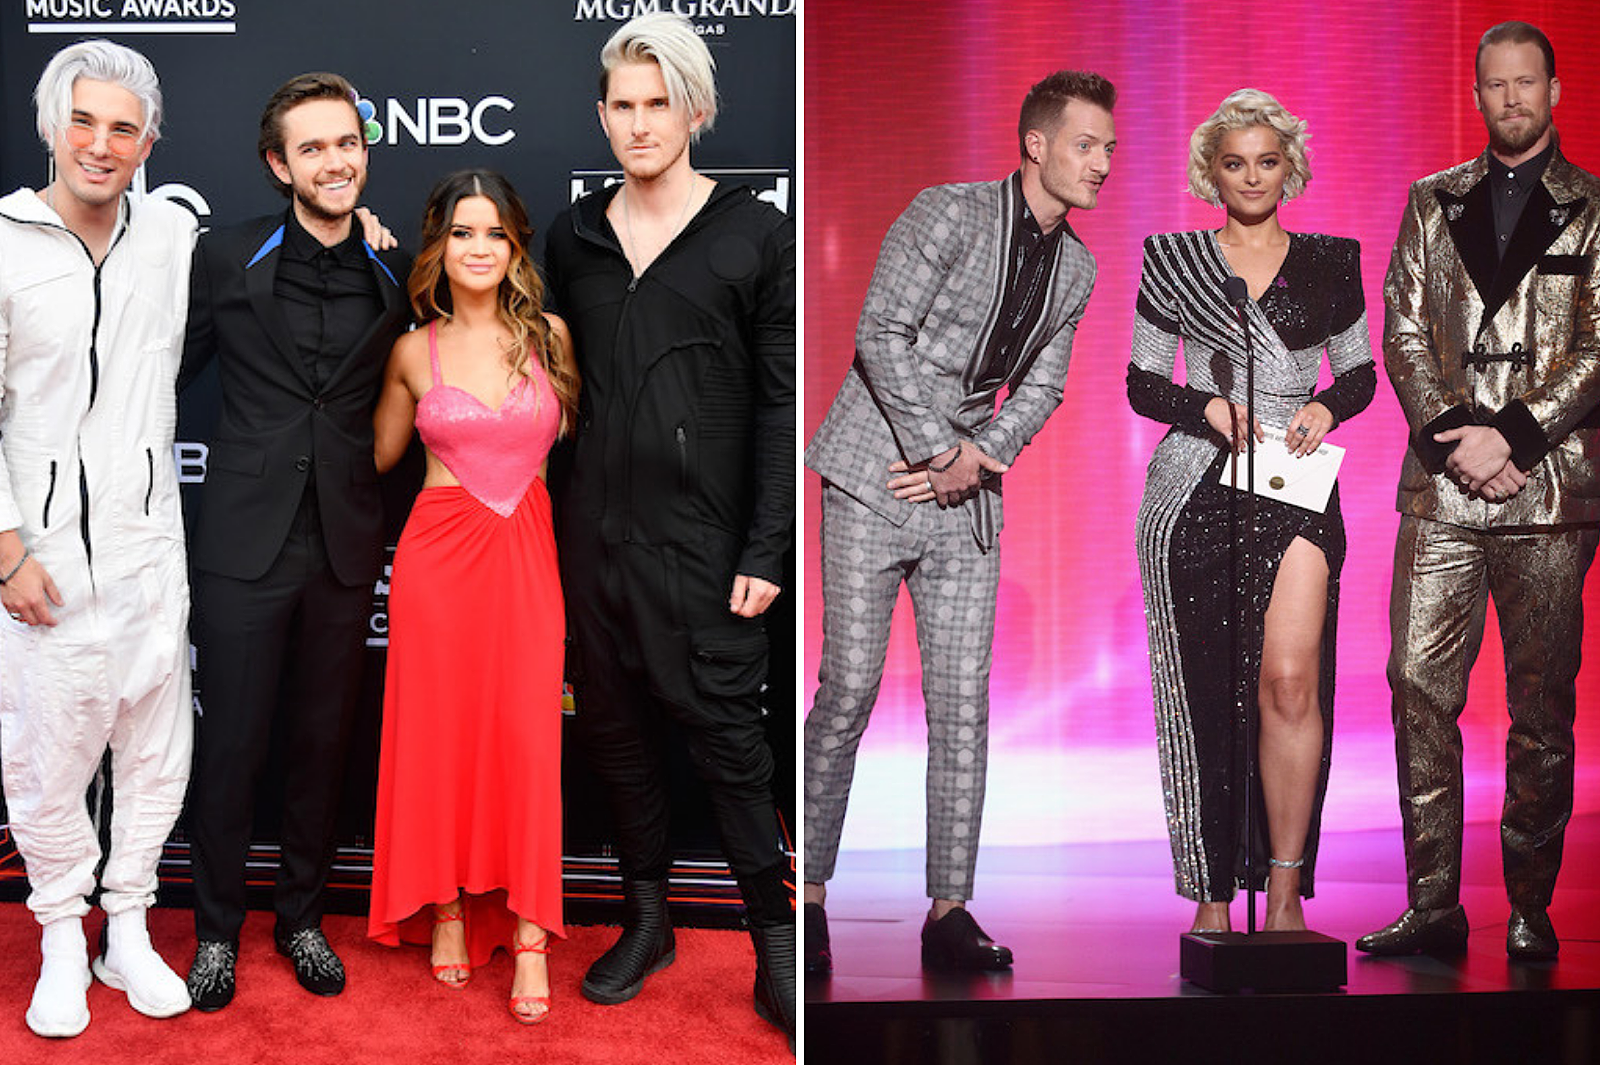 Top 10 Country Collaborations Of 2018